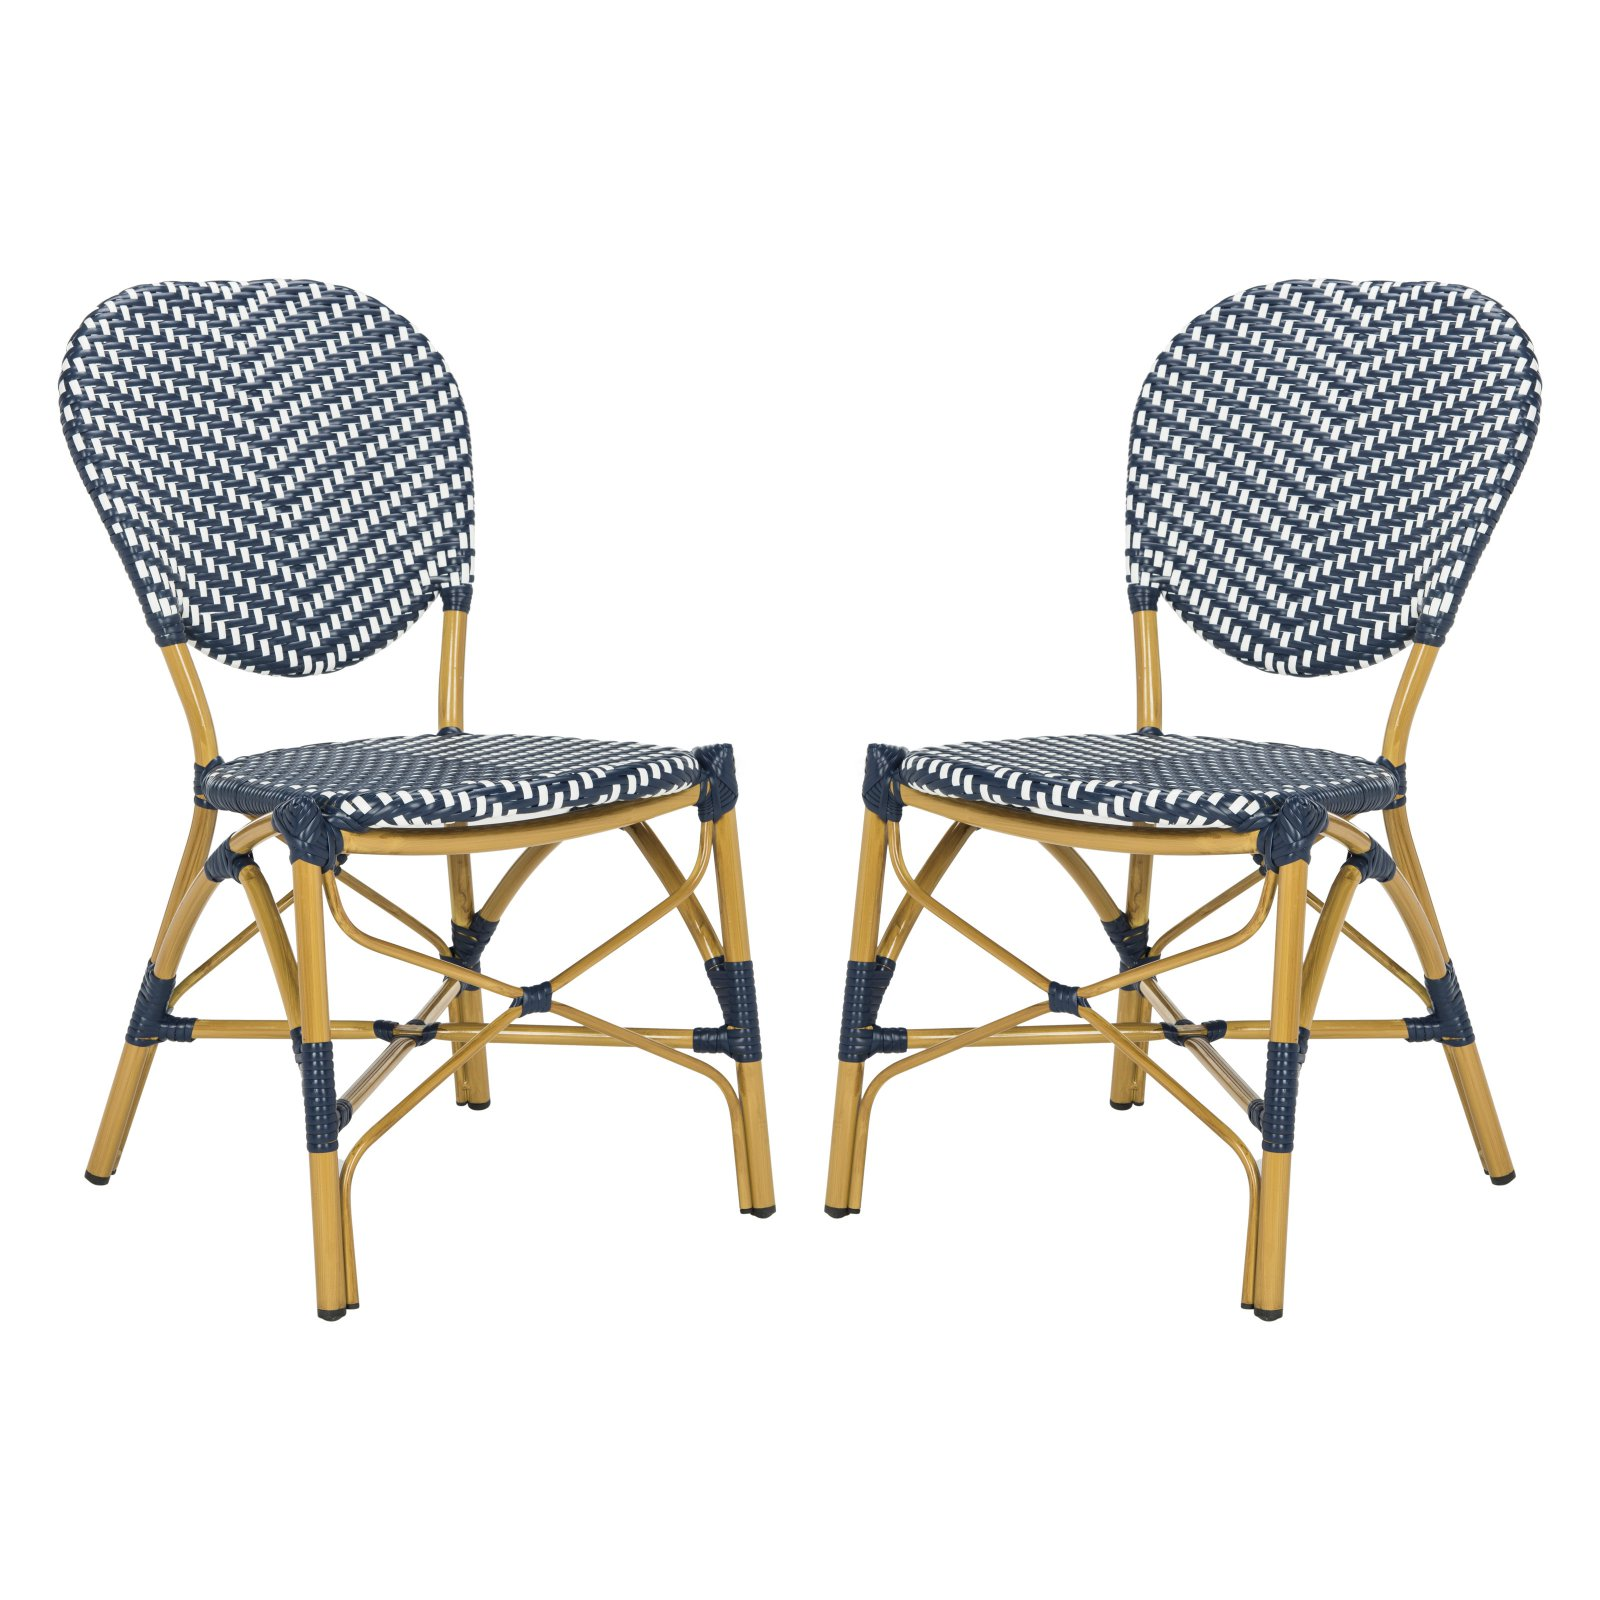 Outdoor French Bistro Chairs Safavieh Lisbeth Outdoor French Bistro Stacking Side Chair Set Of 2